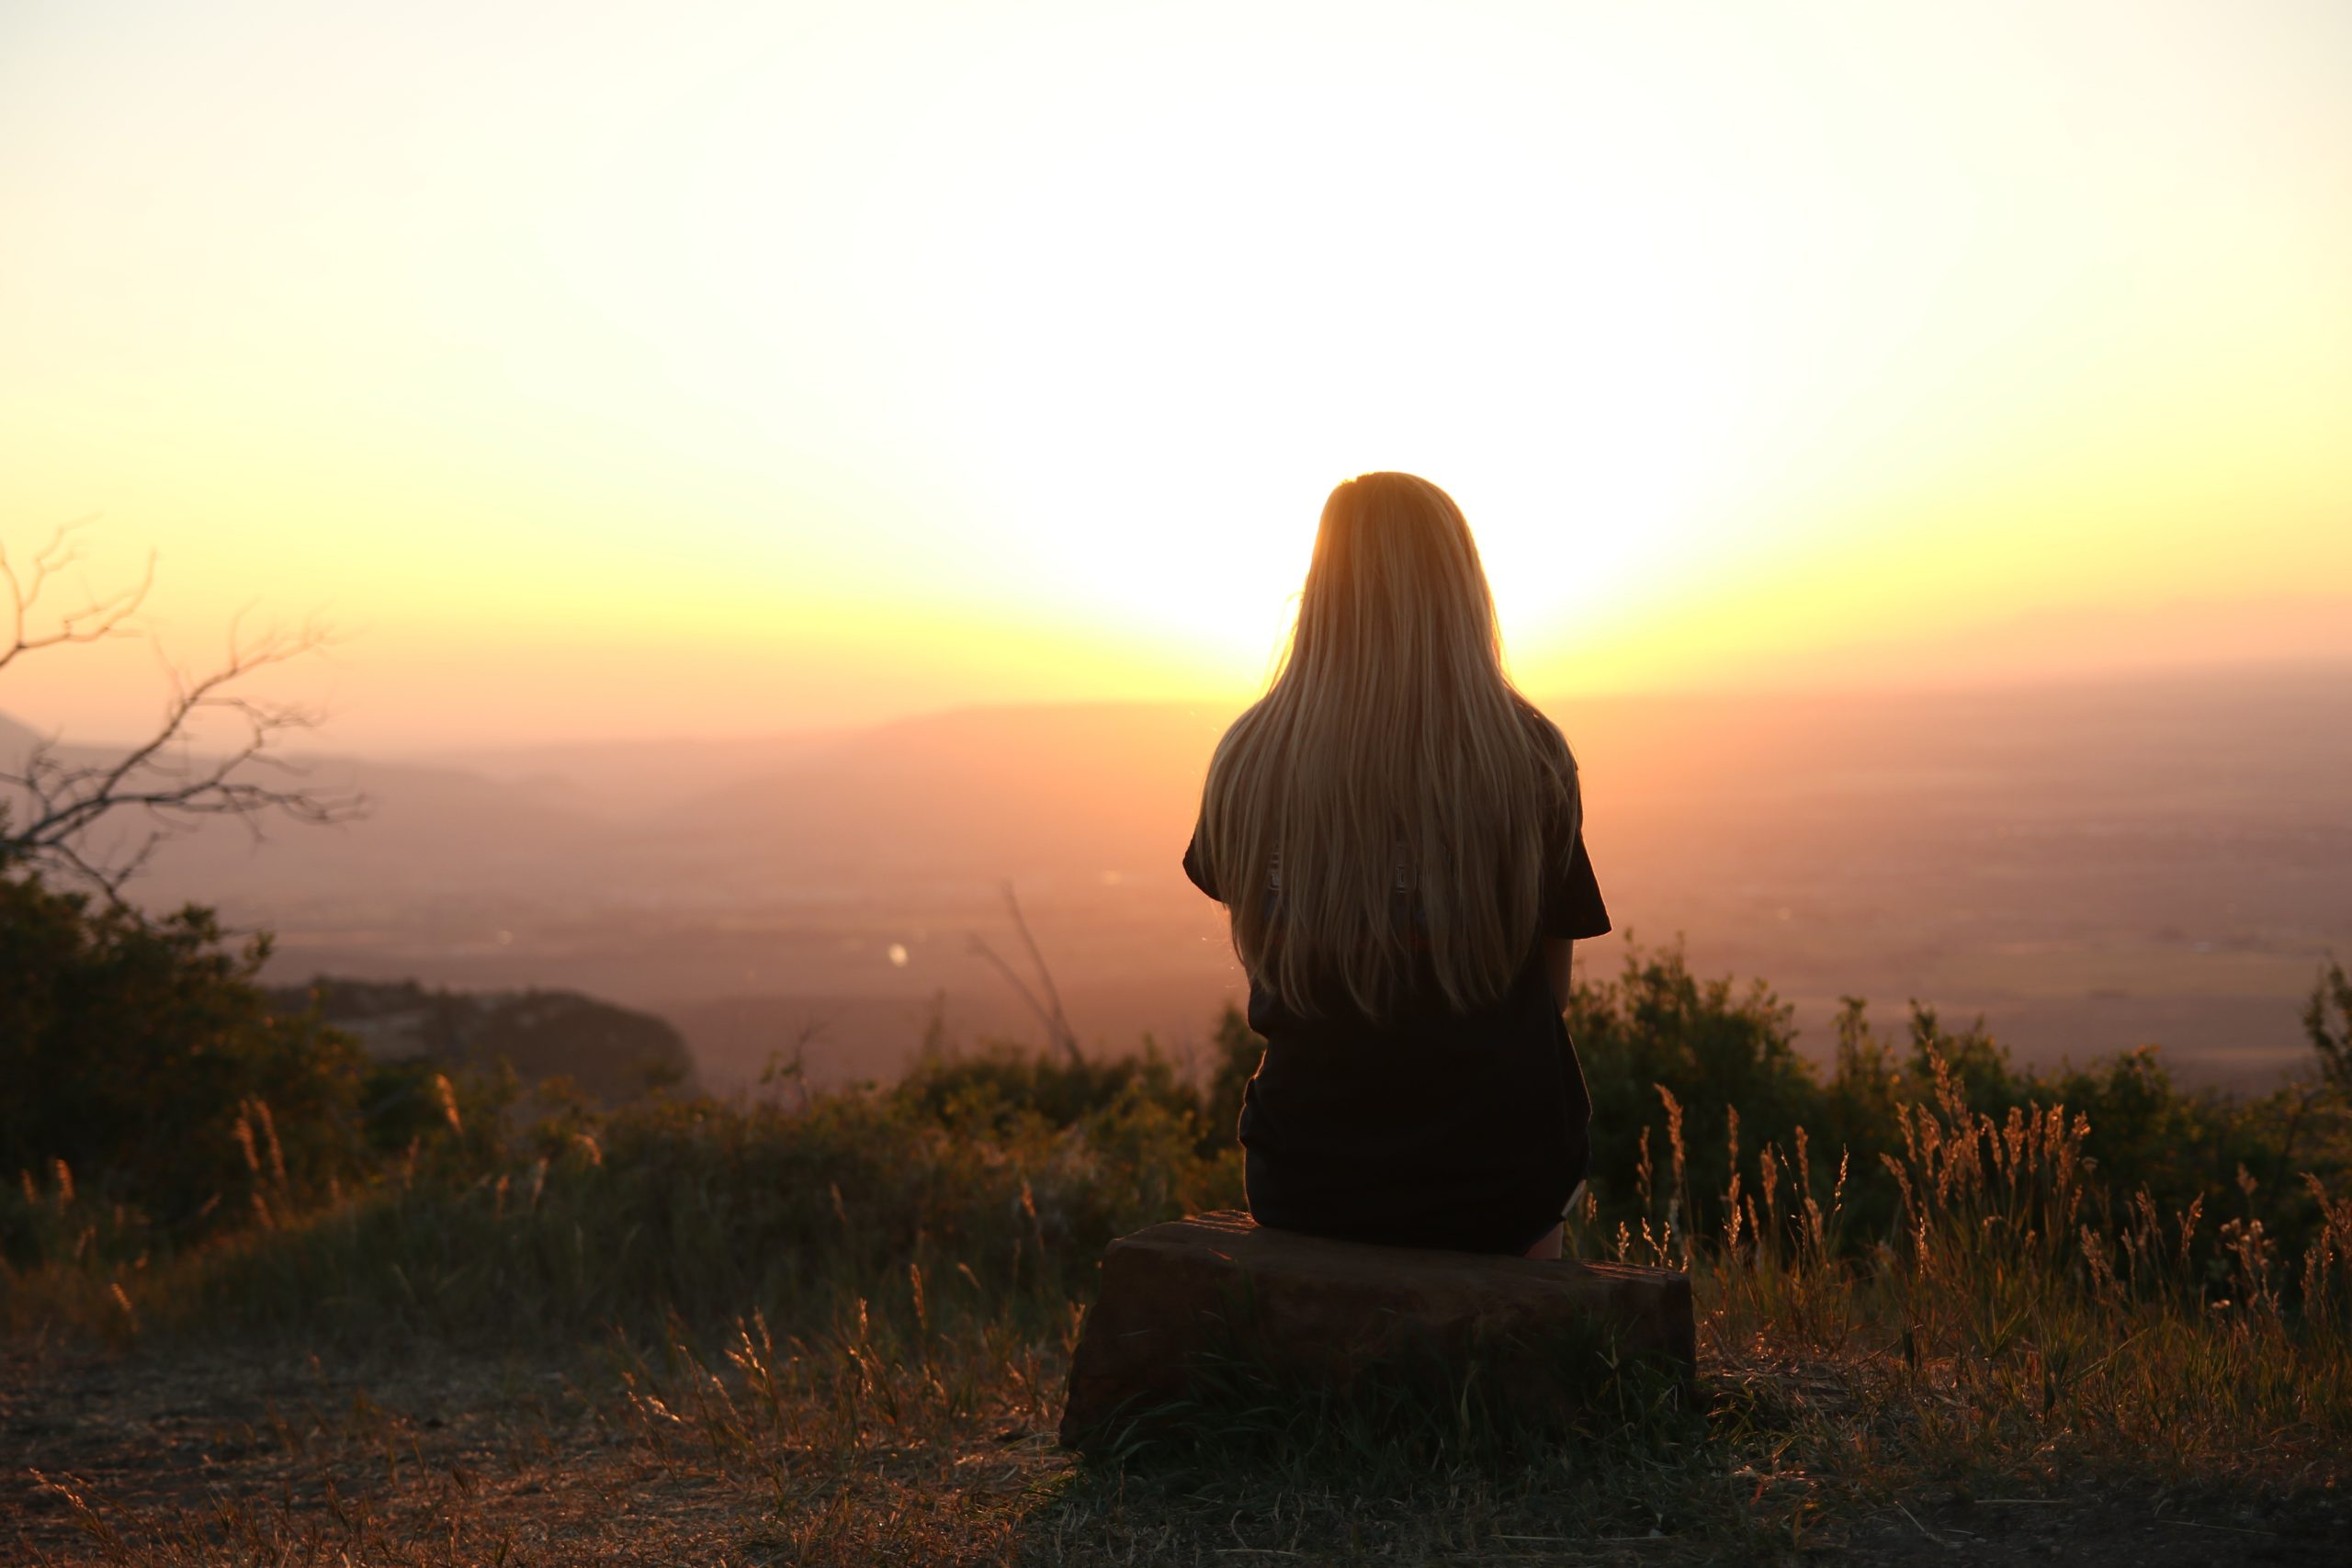 Girl sitting on a rock gazing out over the hills onto a sunset